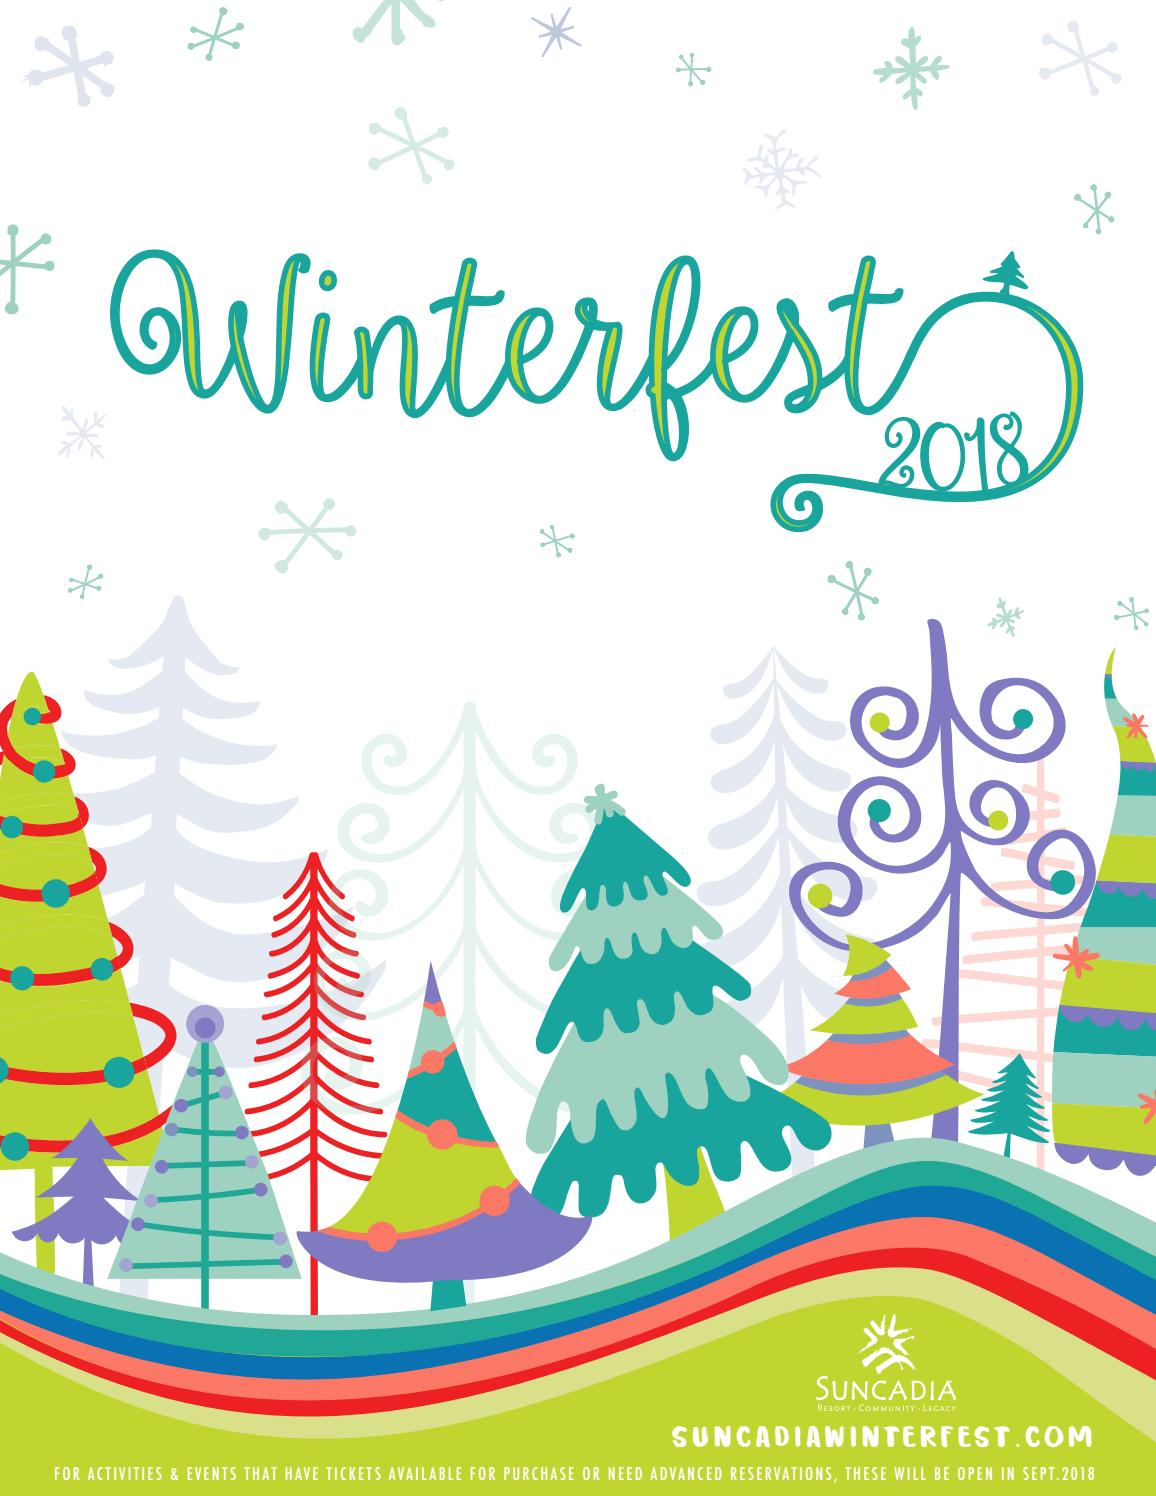 Container Haus Winterfest Suncadia 2018 Winterfest Guide By Suncadia Resort Issuu